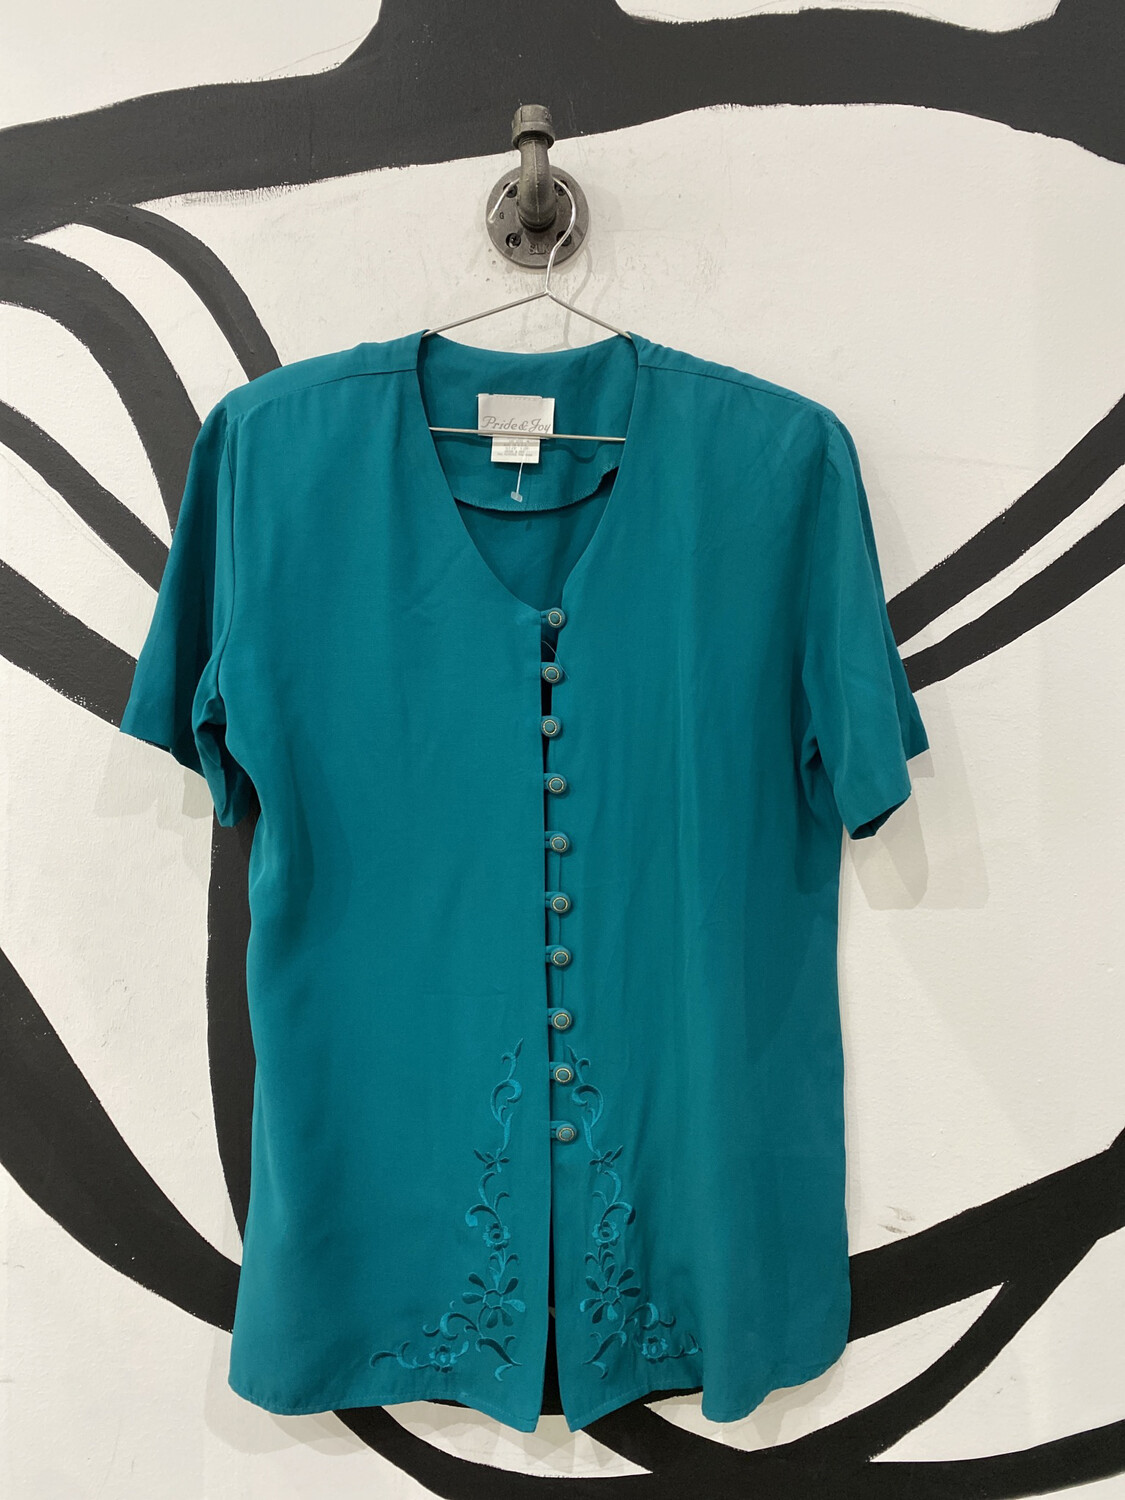 Teal Top with Embroidery Detail - Women's 12p